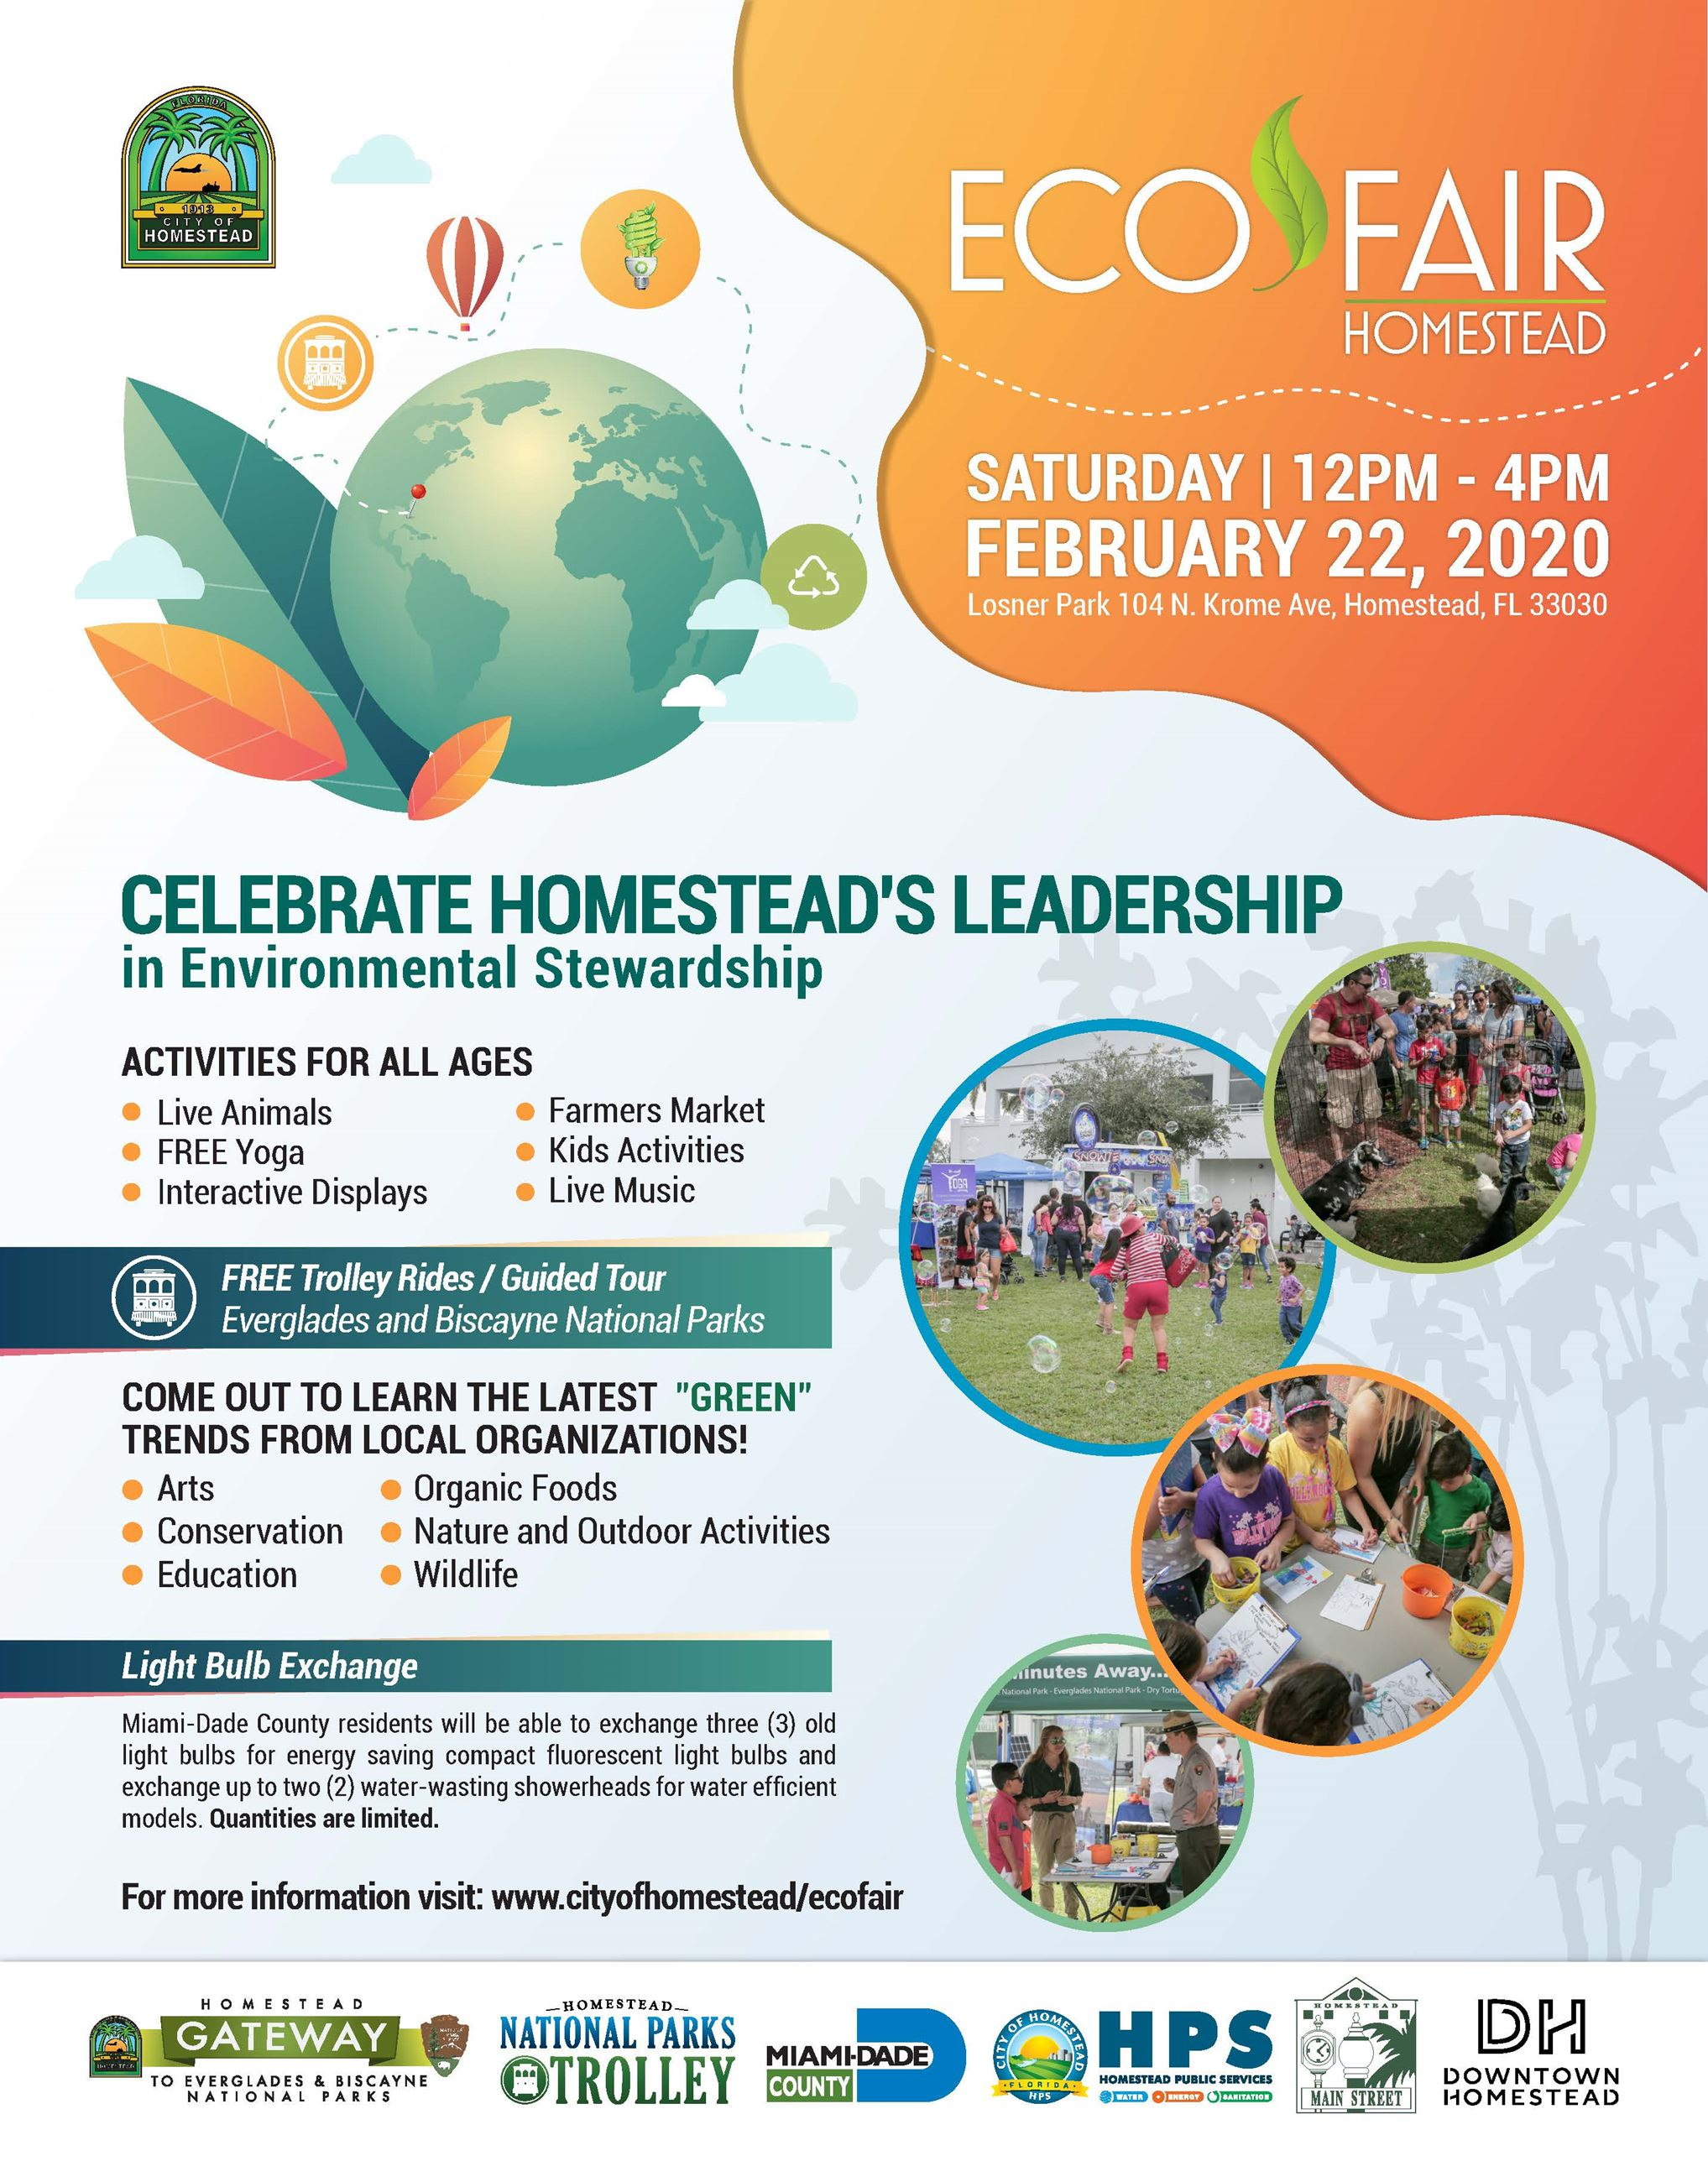 Homestead Eco Fair Flyer 2020